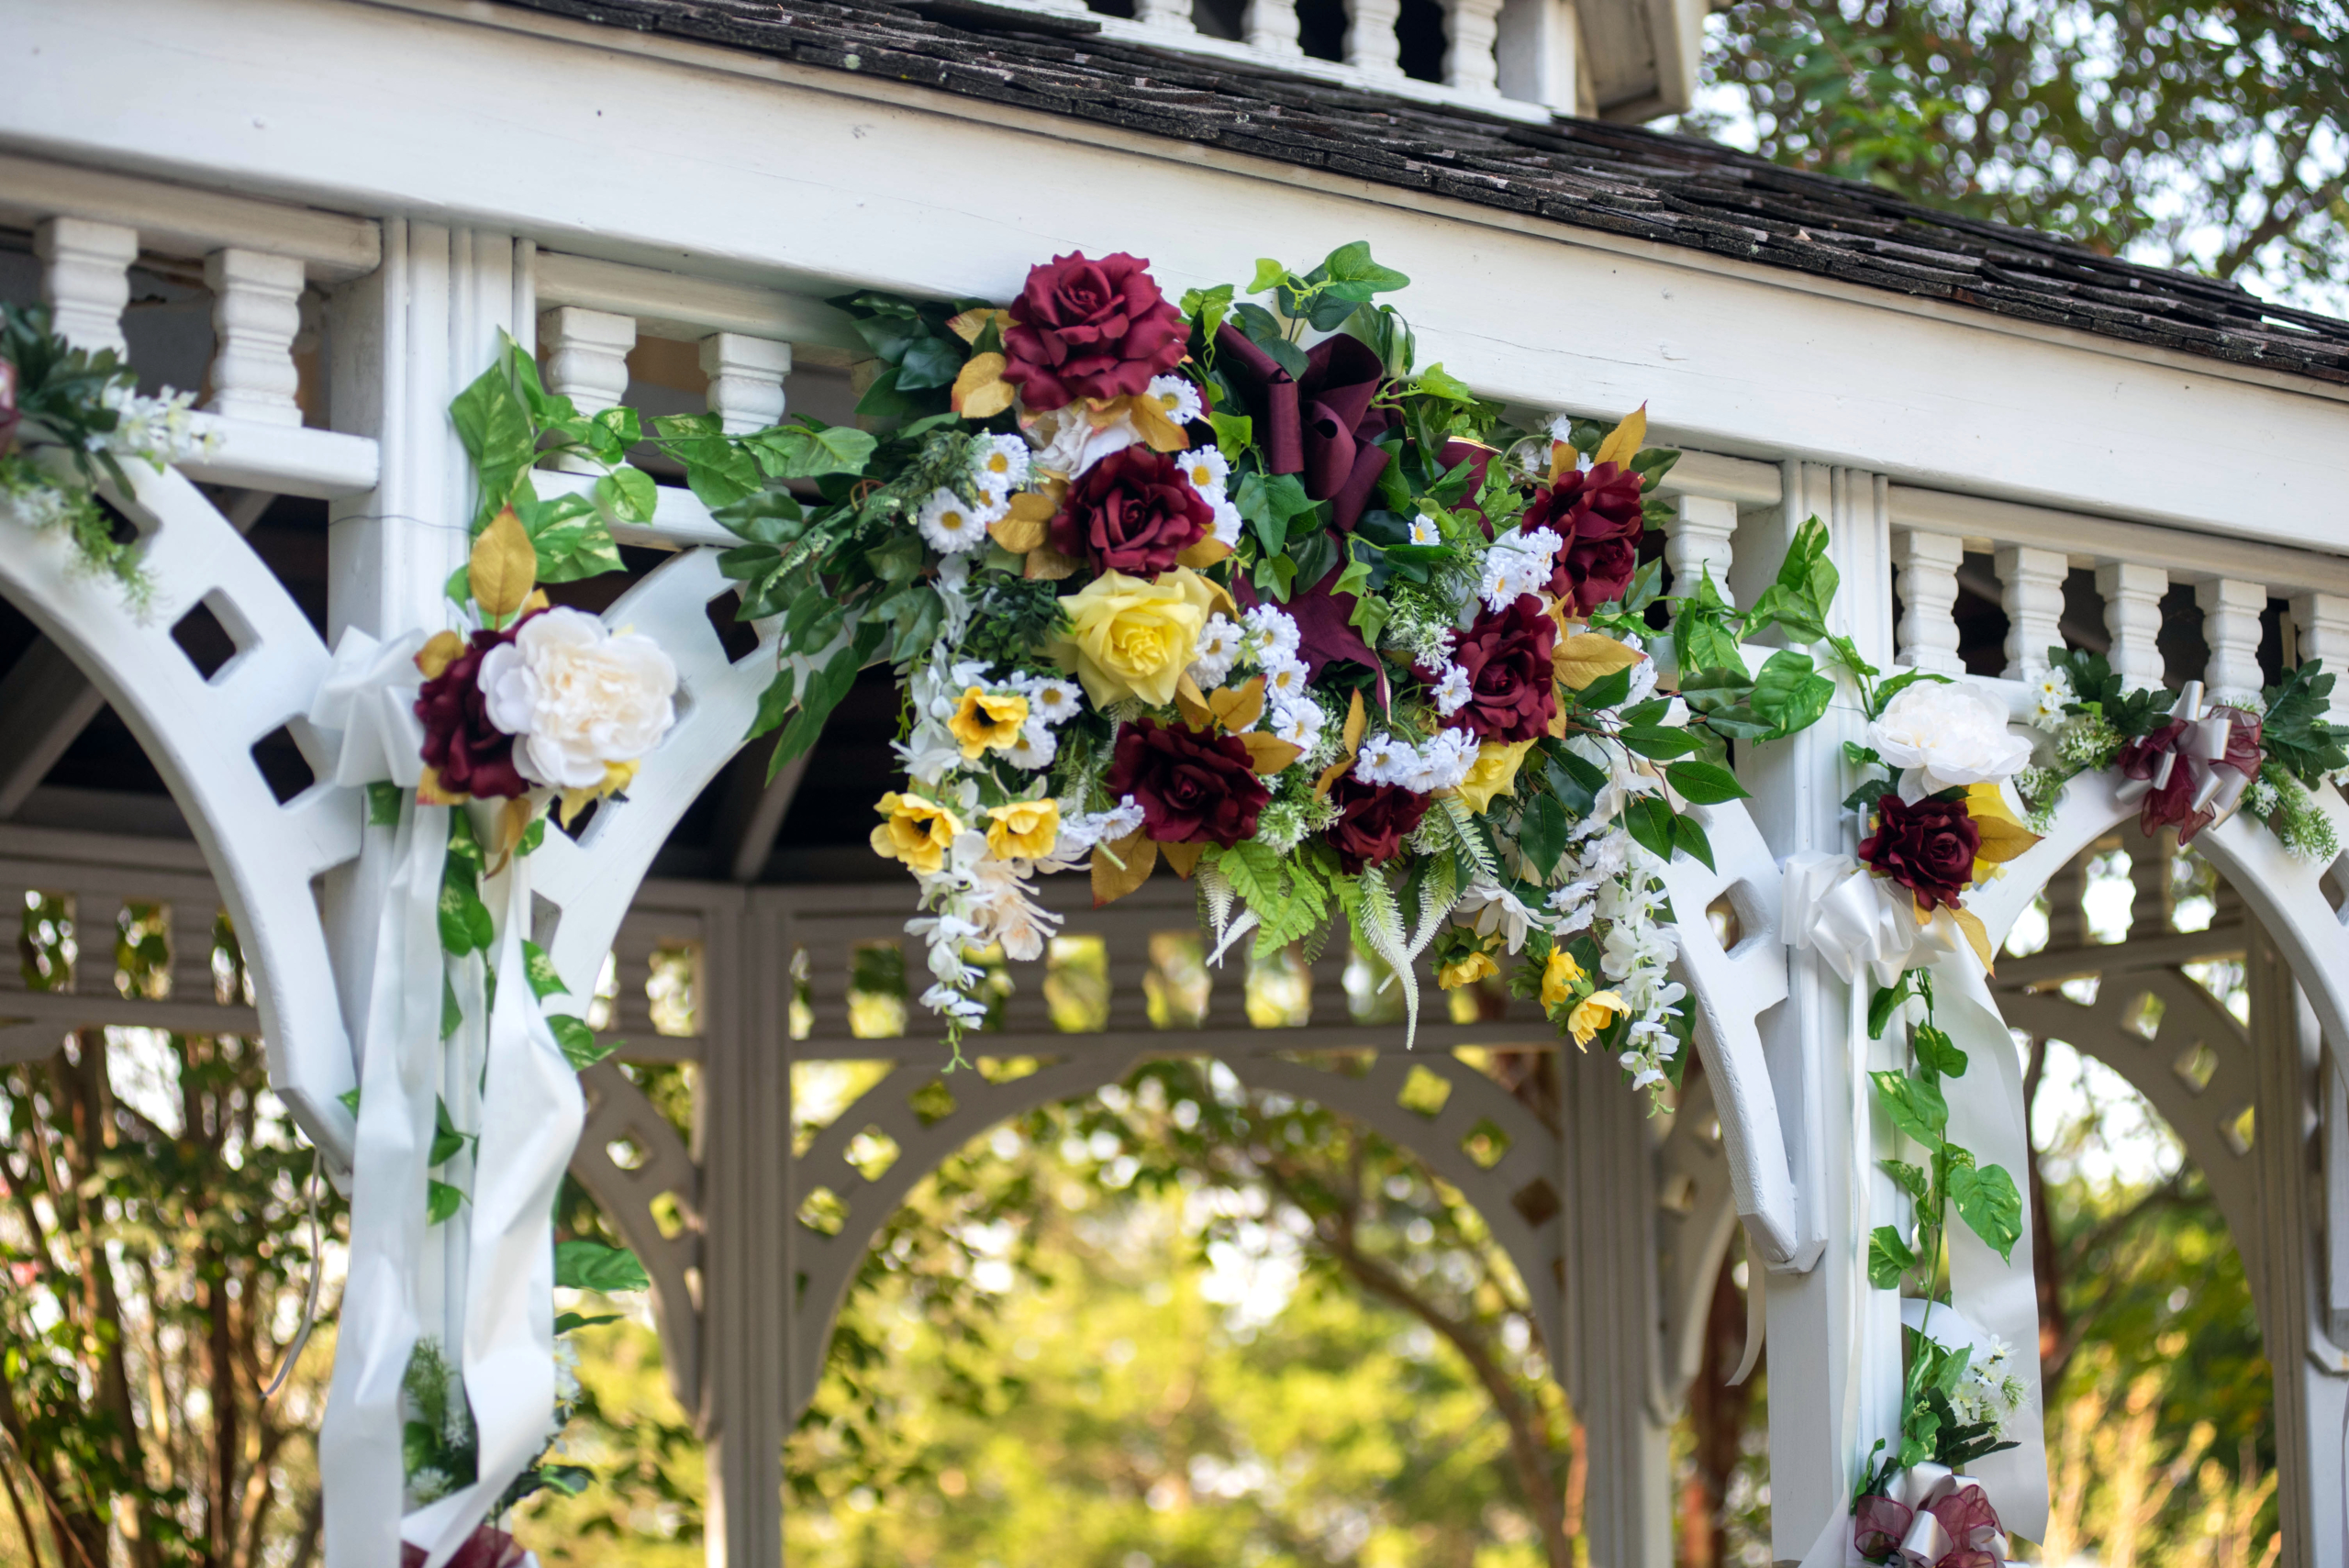 Red and white Rose arrangement on a gazebo overhang in the afternoon - Covid-19 Weddings